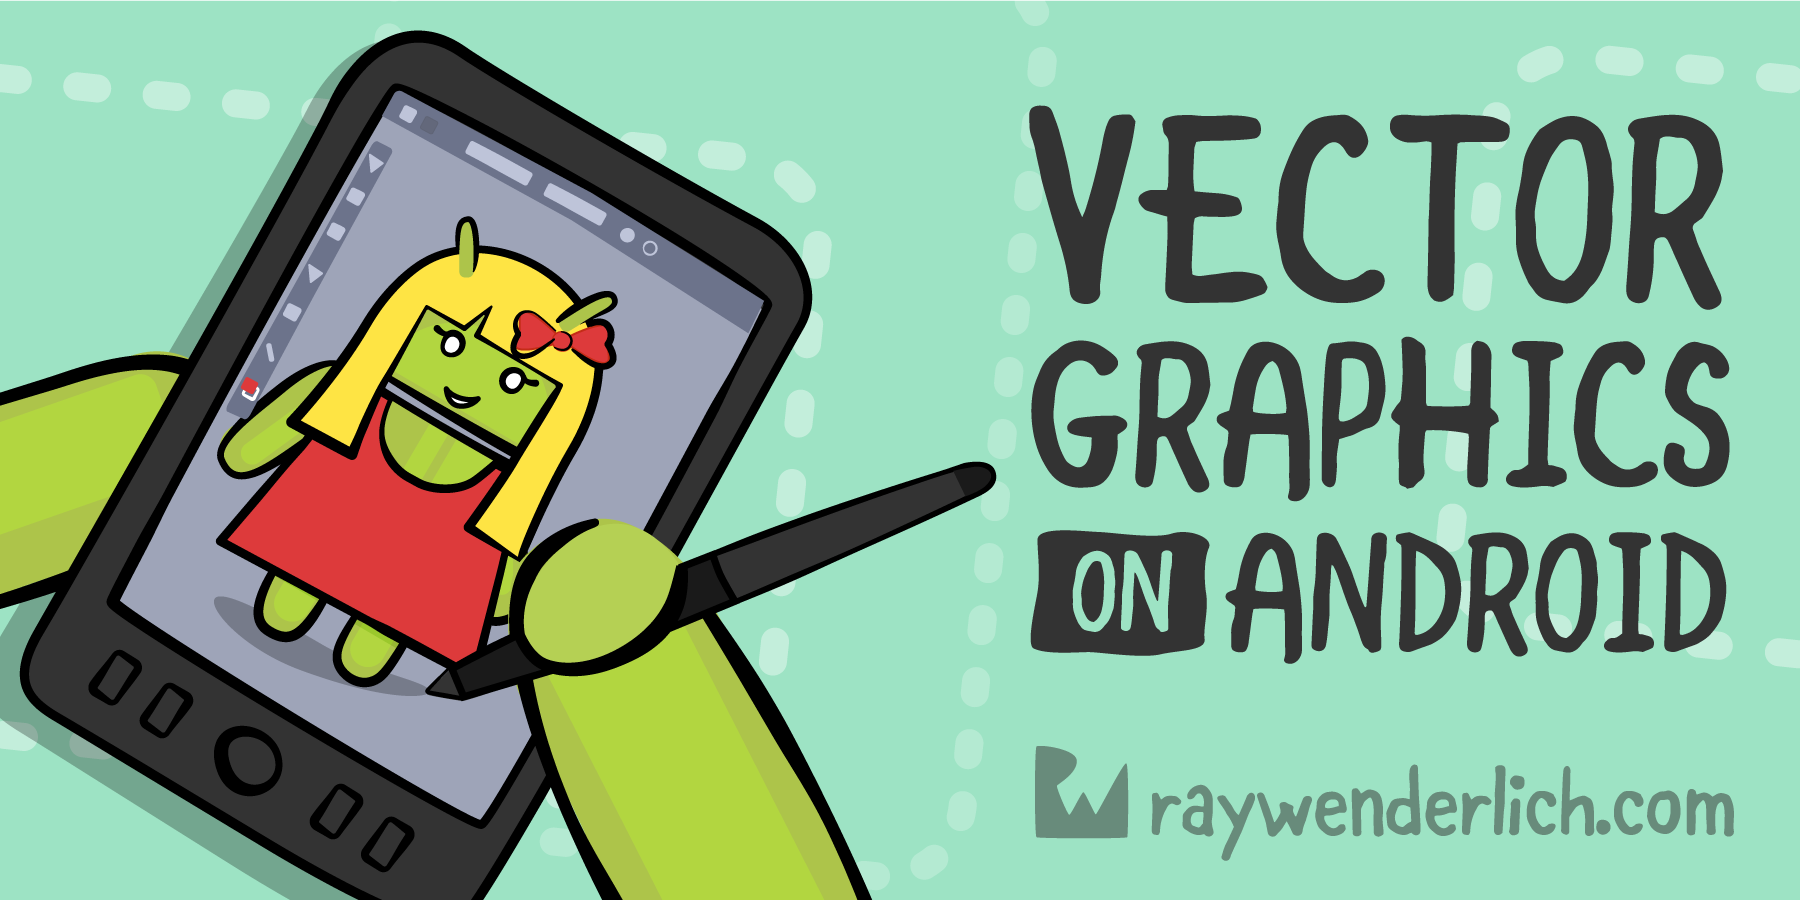 QnA VBage Vector Graphics on Android [FREE]